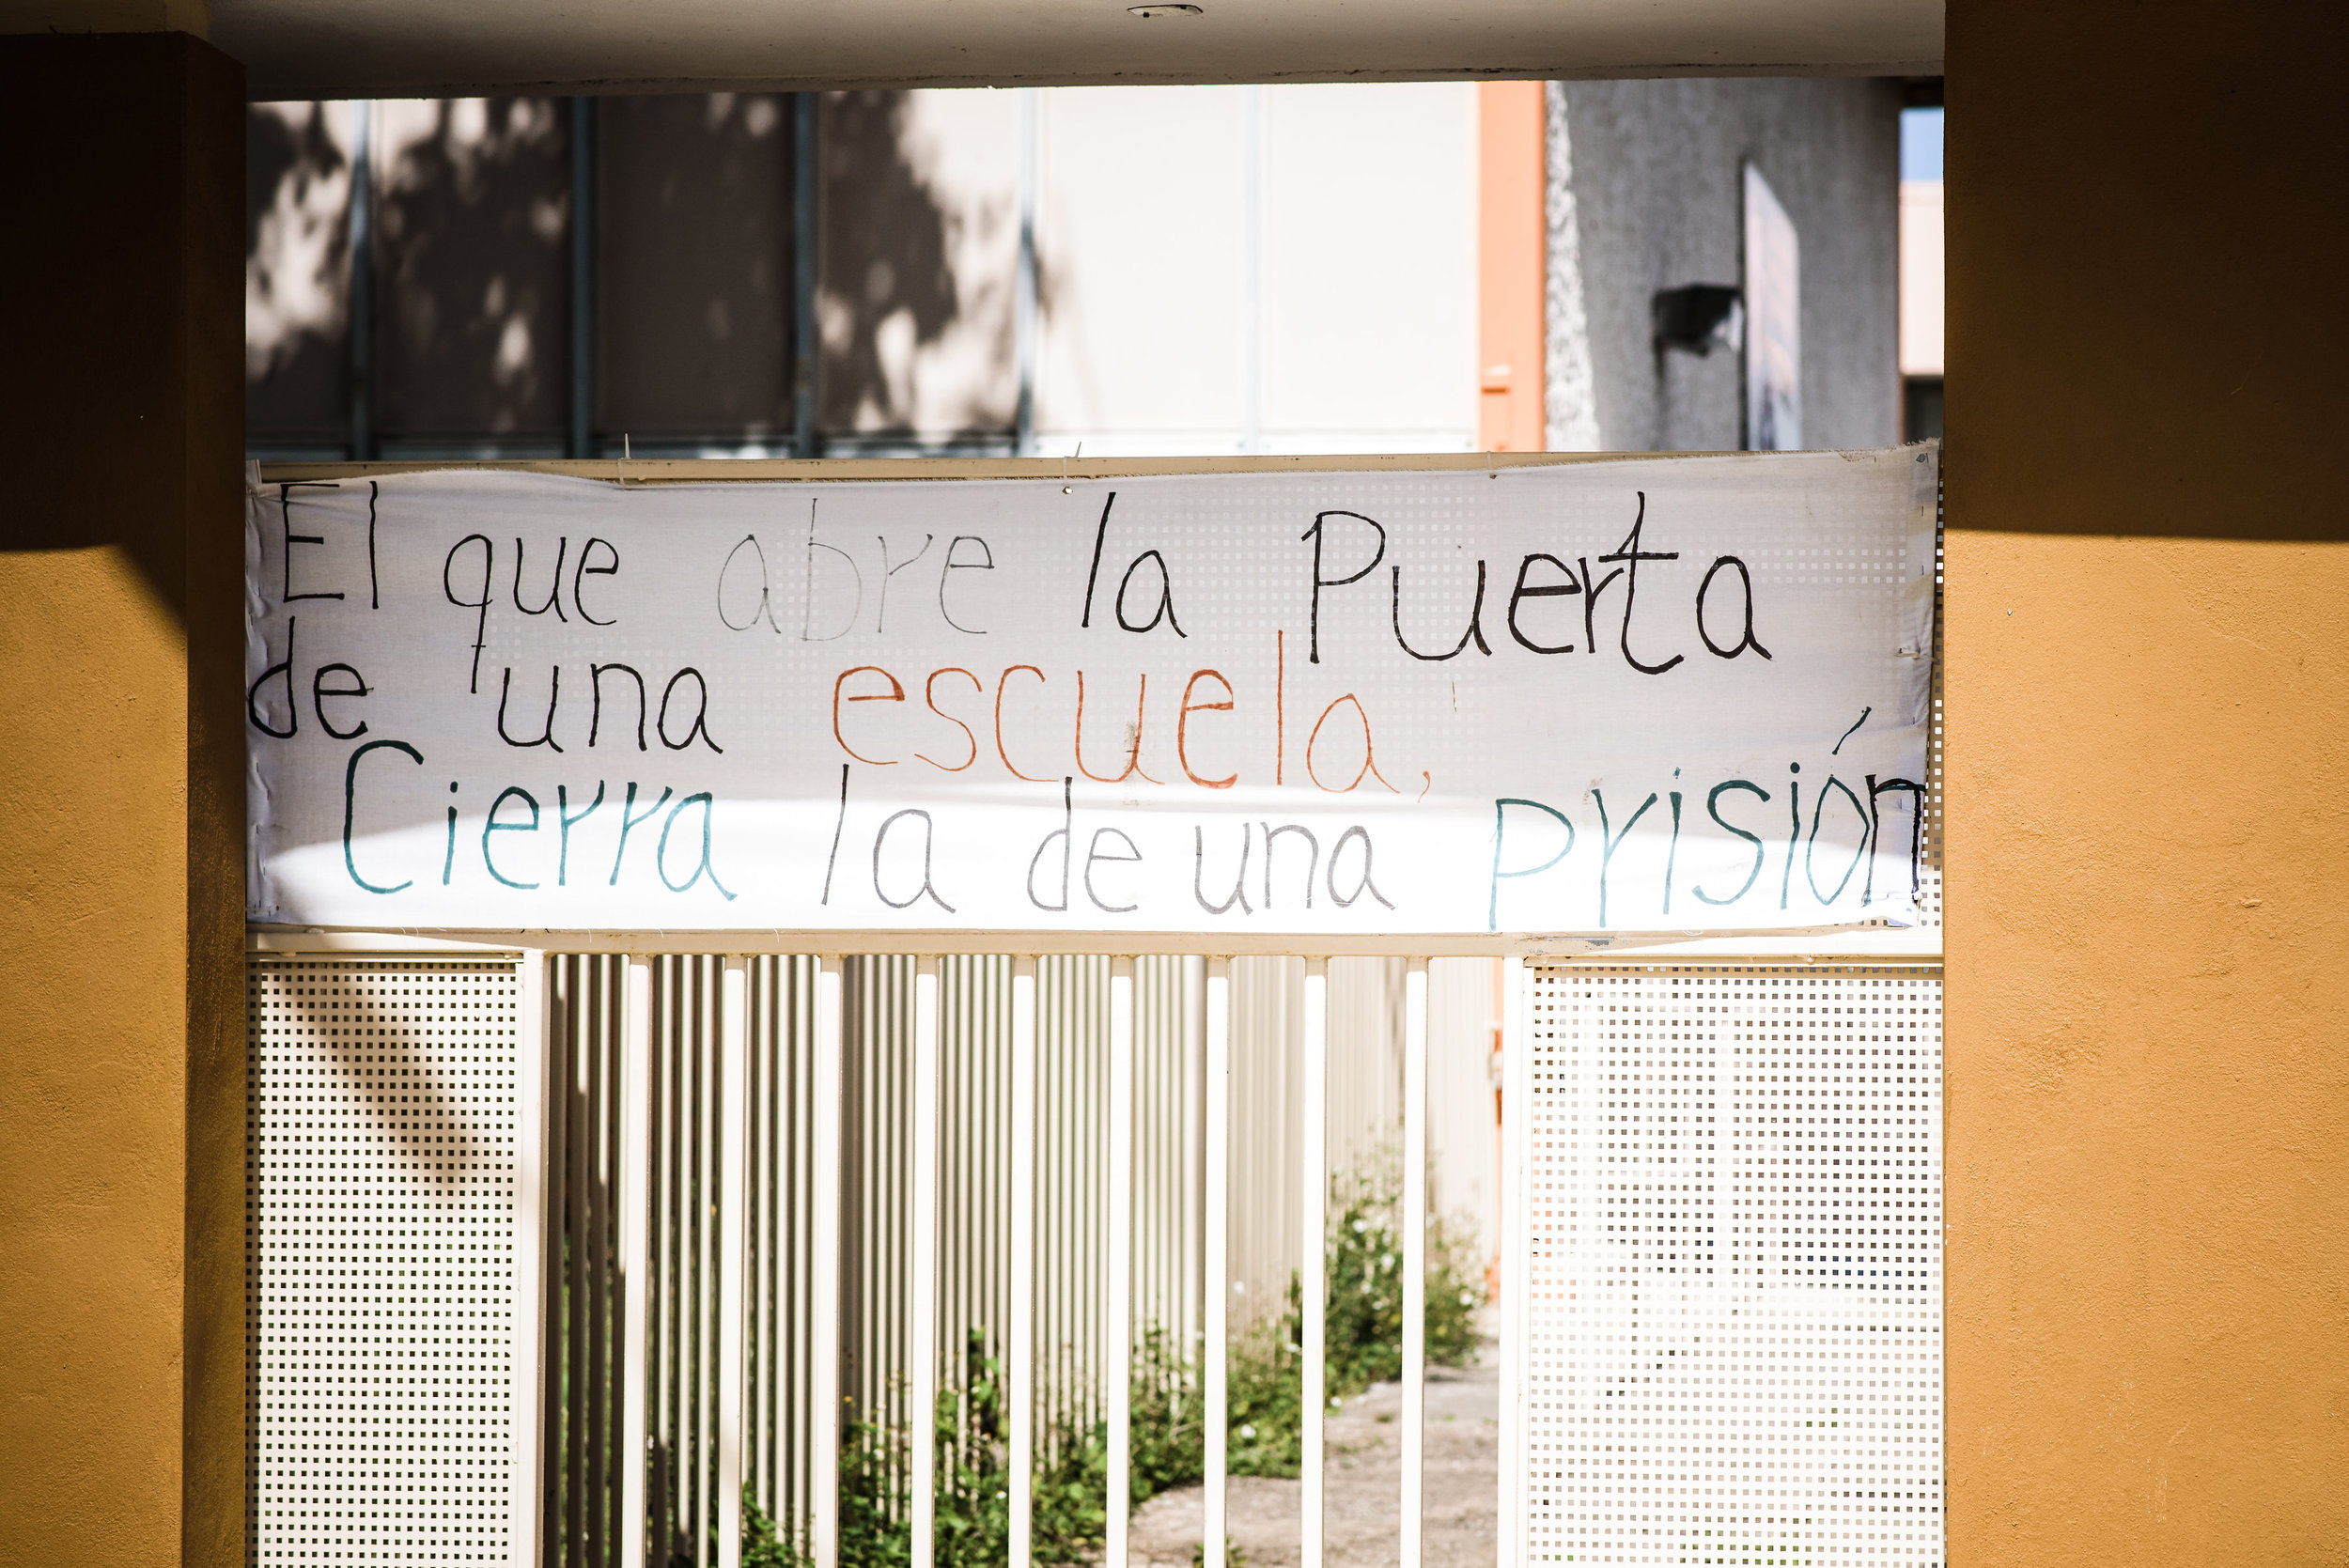 """A middle school in the Cantera neighborhood in San Juan, closed since for more than four months at the time the photo was taken.Someone posted a hand lettered sign to the locked gate: """"He who opens the door of a school closes a prison."""" The displaced students attend classes at another school nearby - a school holding more than double it's capacity of kids. The host school is an elementary school, so the older kids and younger kids had to share the younger kids' space. Photo: Aniya Emtage Legaro"""